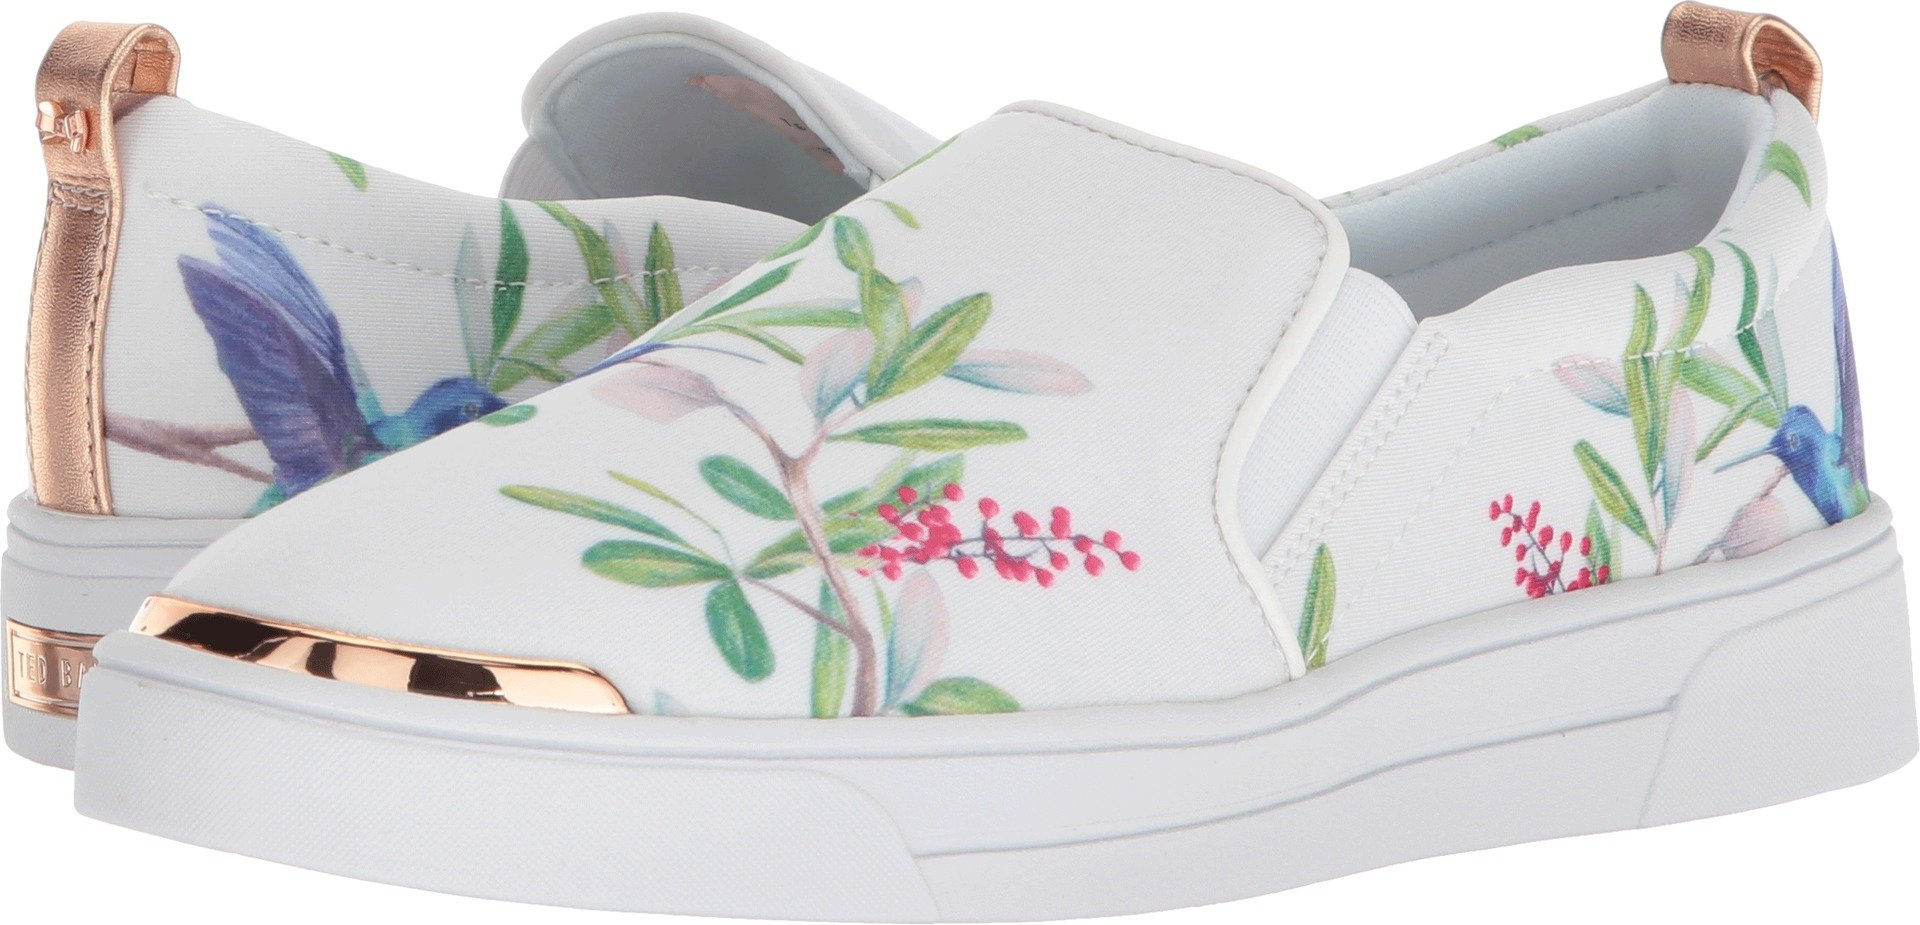 Ted Baker Women's Tancey Sneaker, Highgrove Hummingbird, 8 Medium US